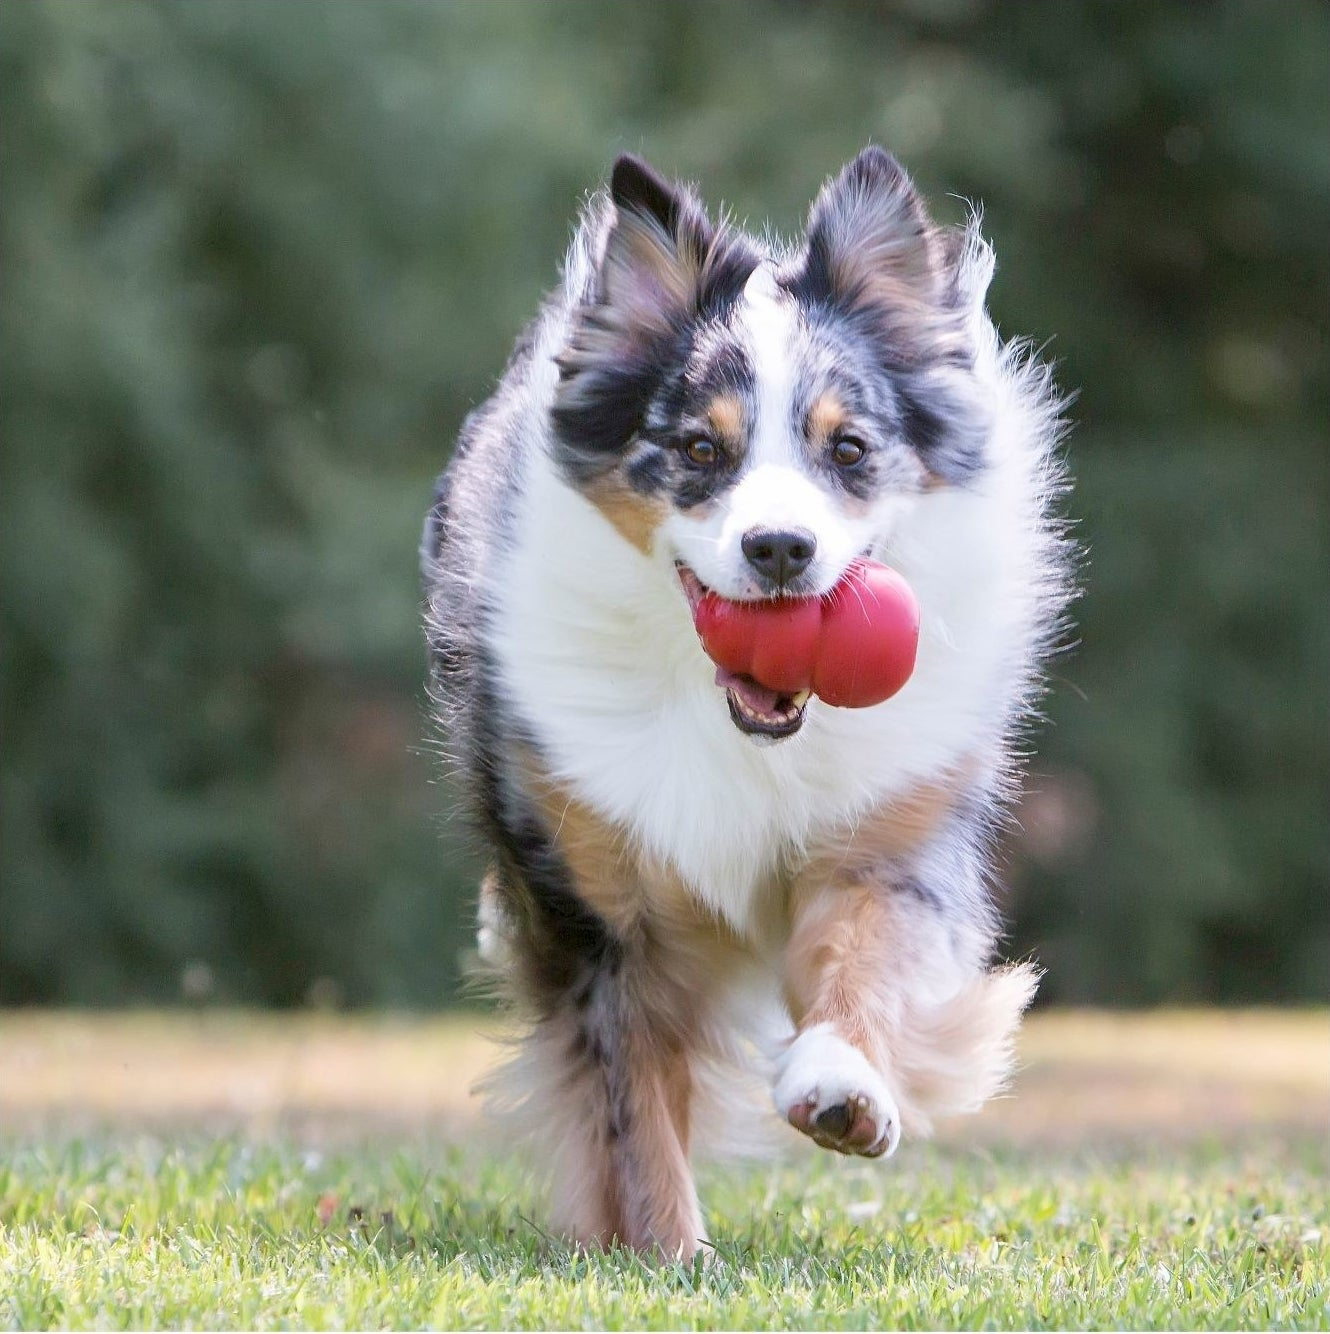 Dog running with a red Kong toy in its mouth